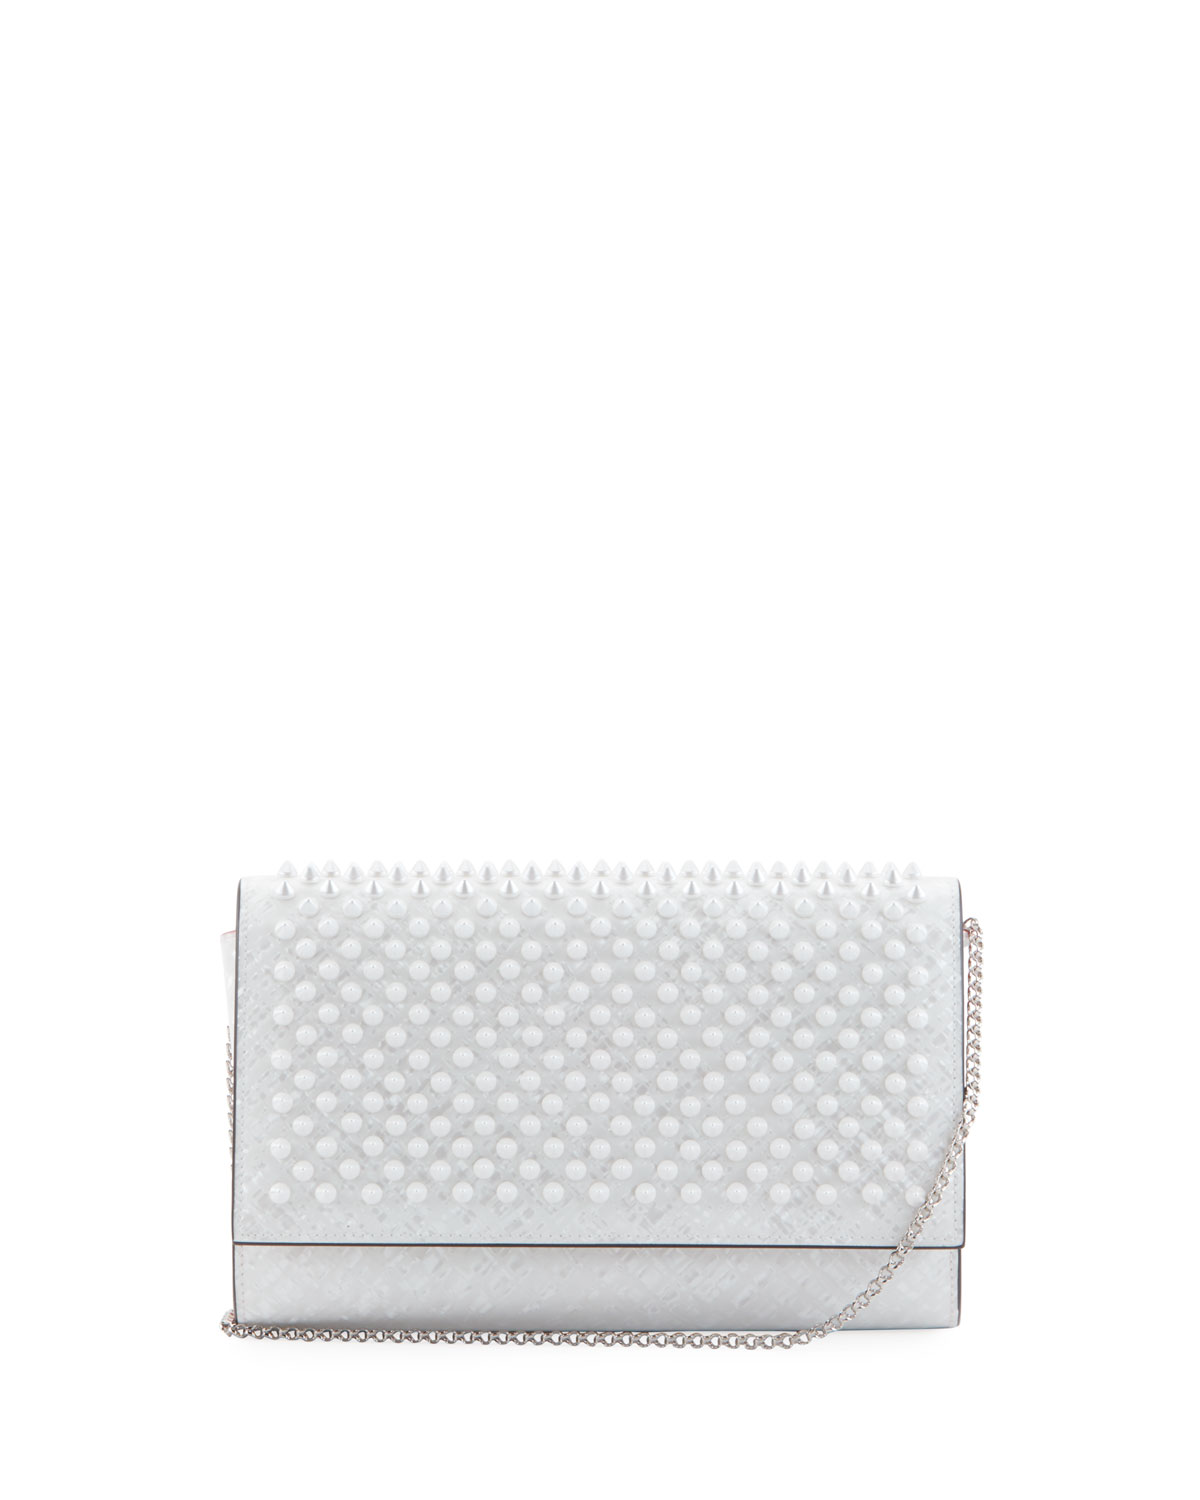 17a0d3a80026 Christian Louboutin Paloma Coquillage Spikes Fold-Over Clutch Bag ...